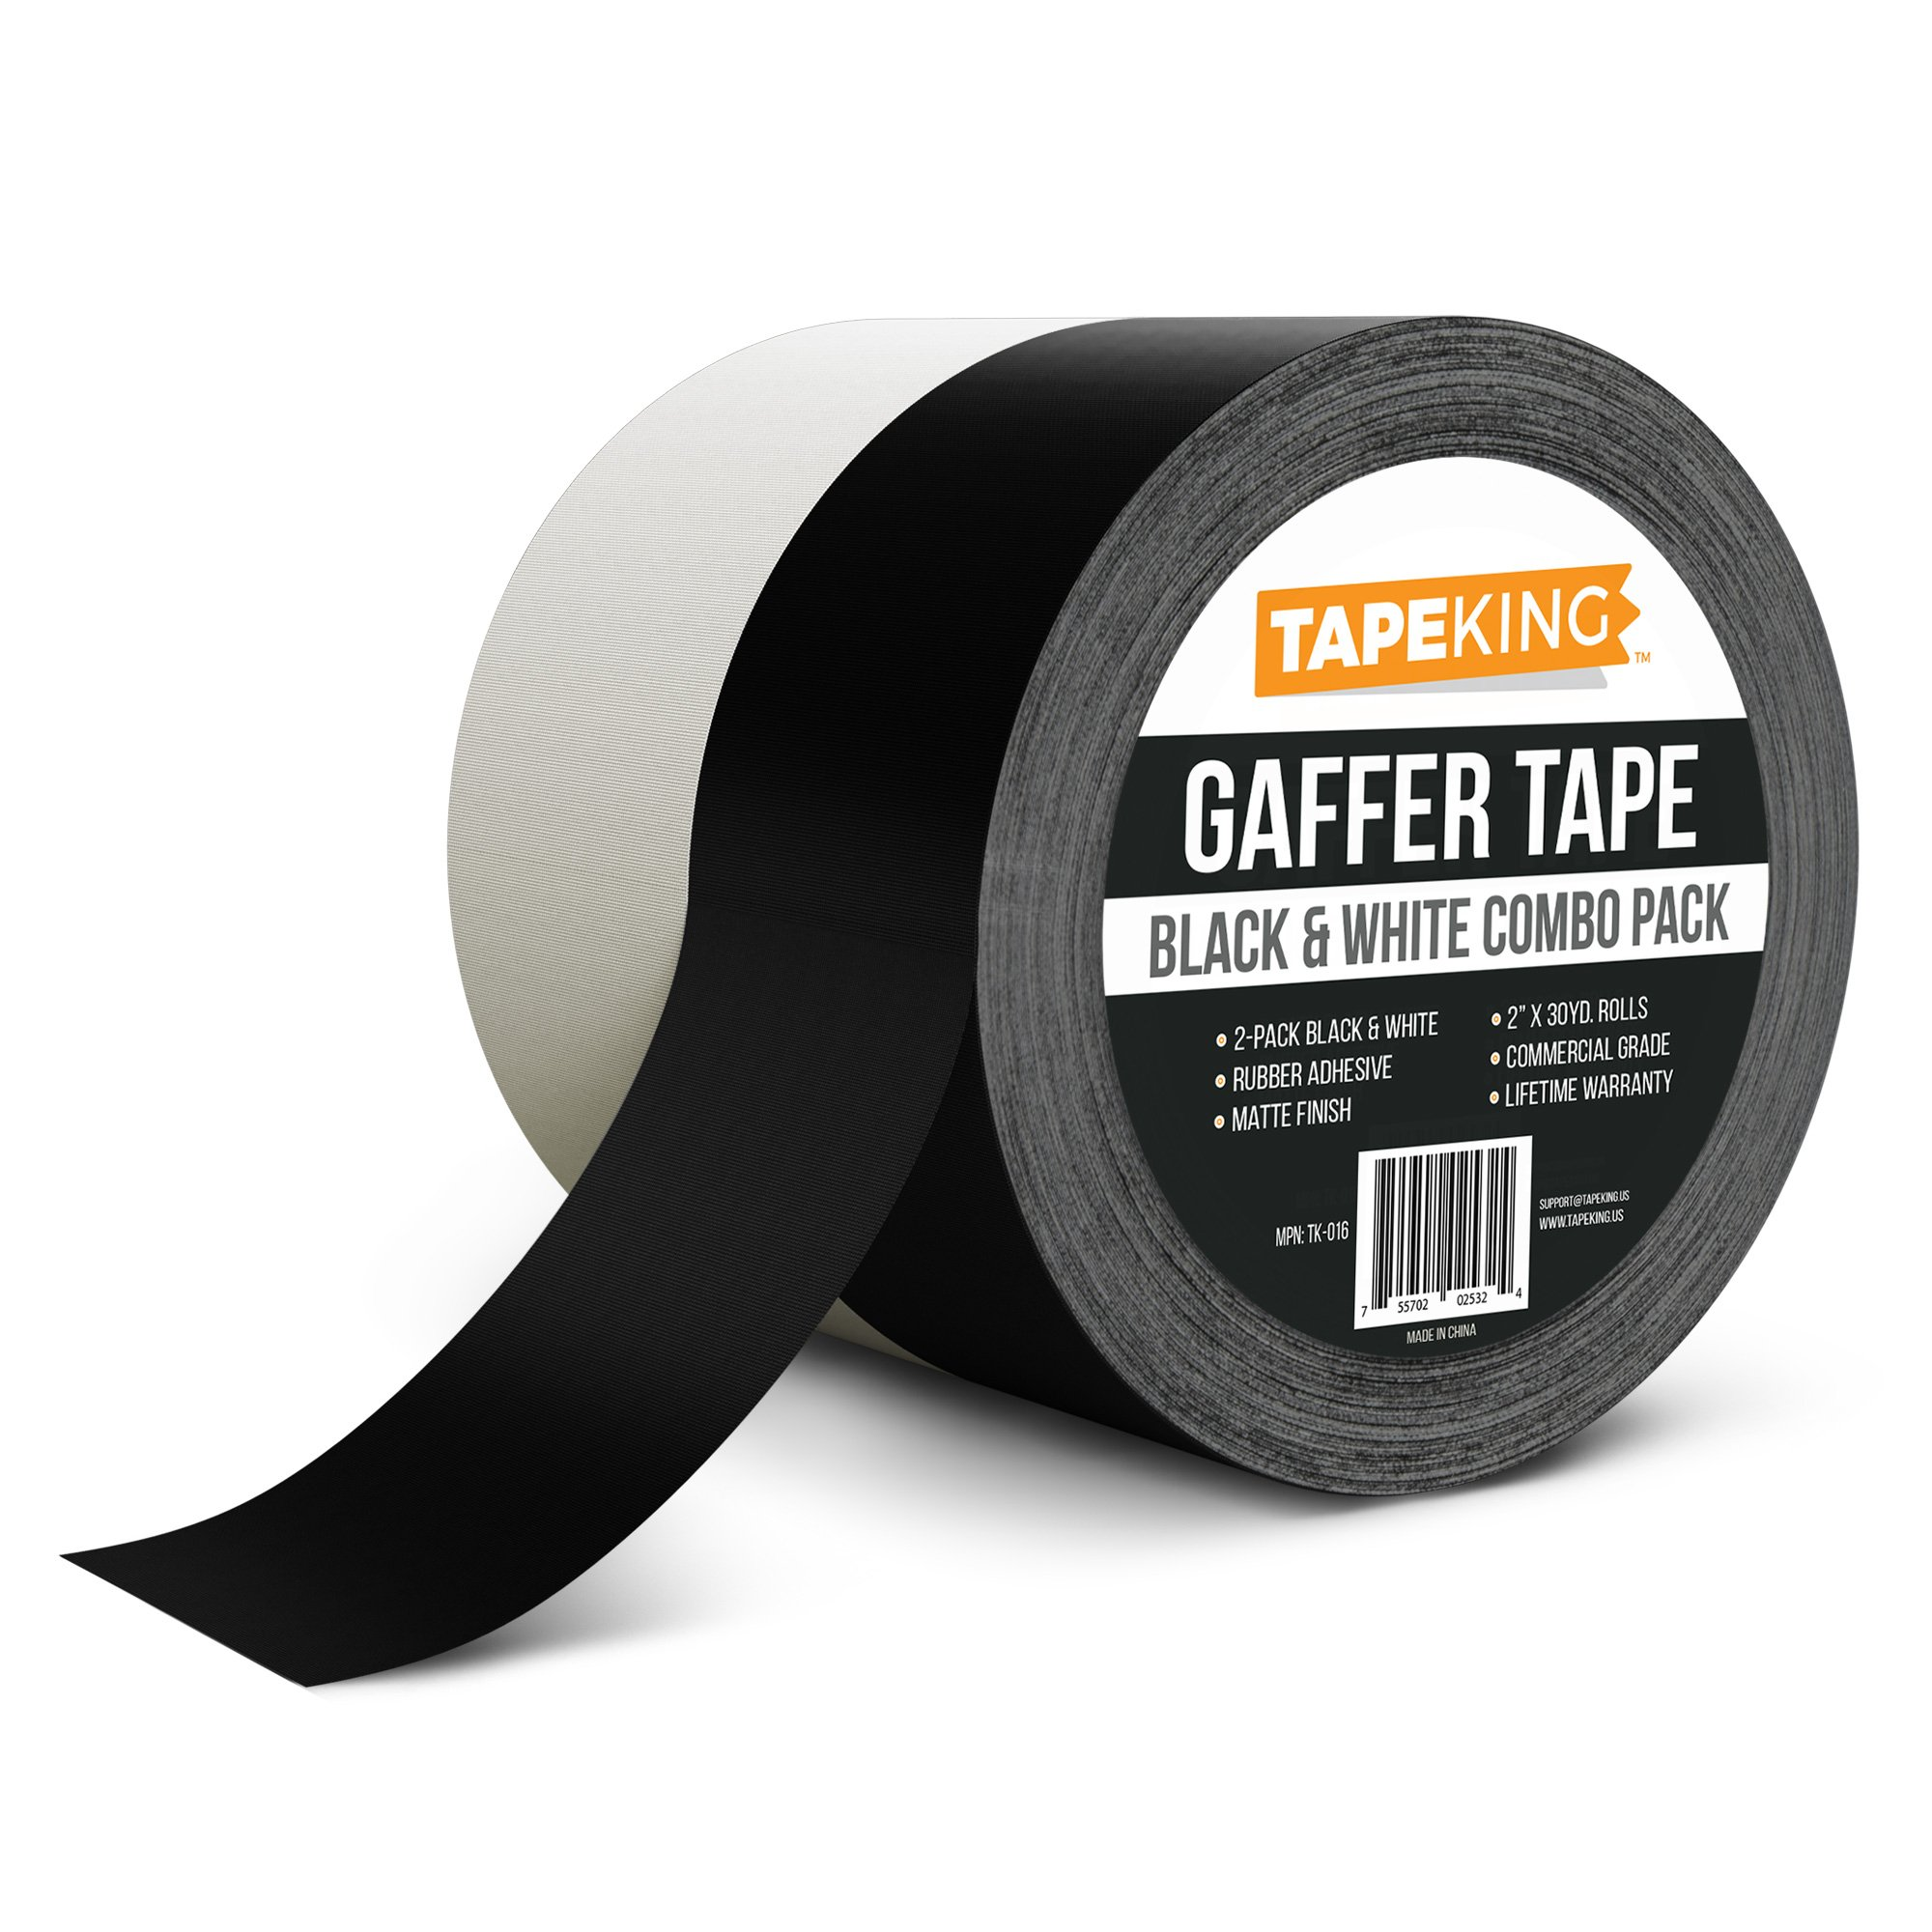 Tape King Gaffers Tape (2-Pack) Premium Professional Grade, 2 Inch X 30 Yards each (Black & White Combo Gaffer Pack)